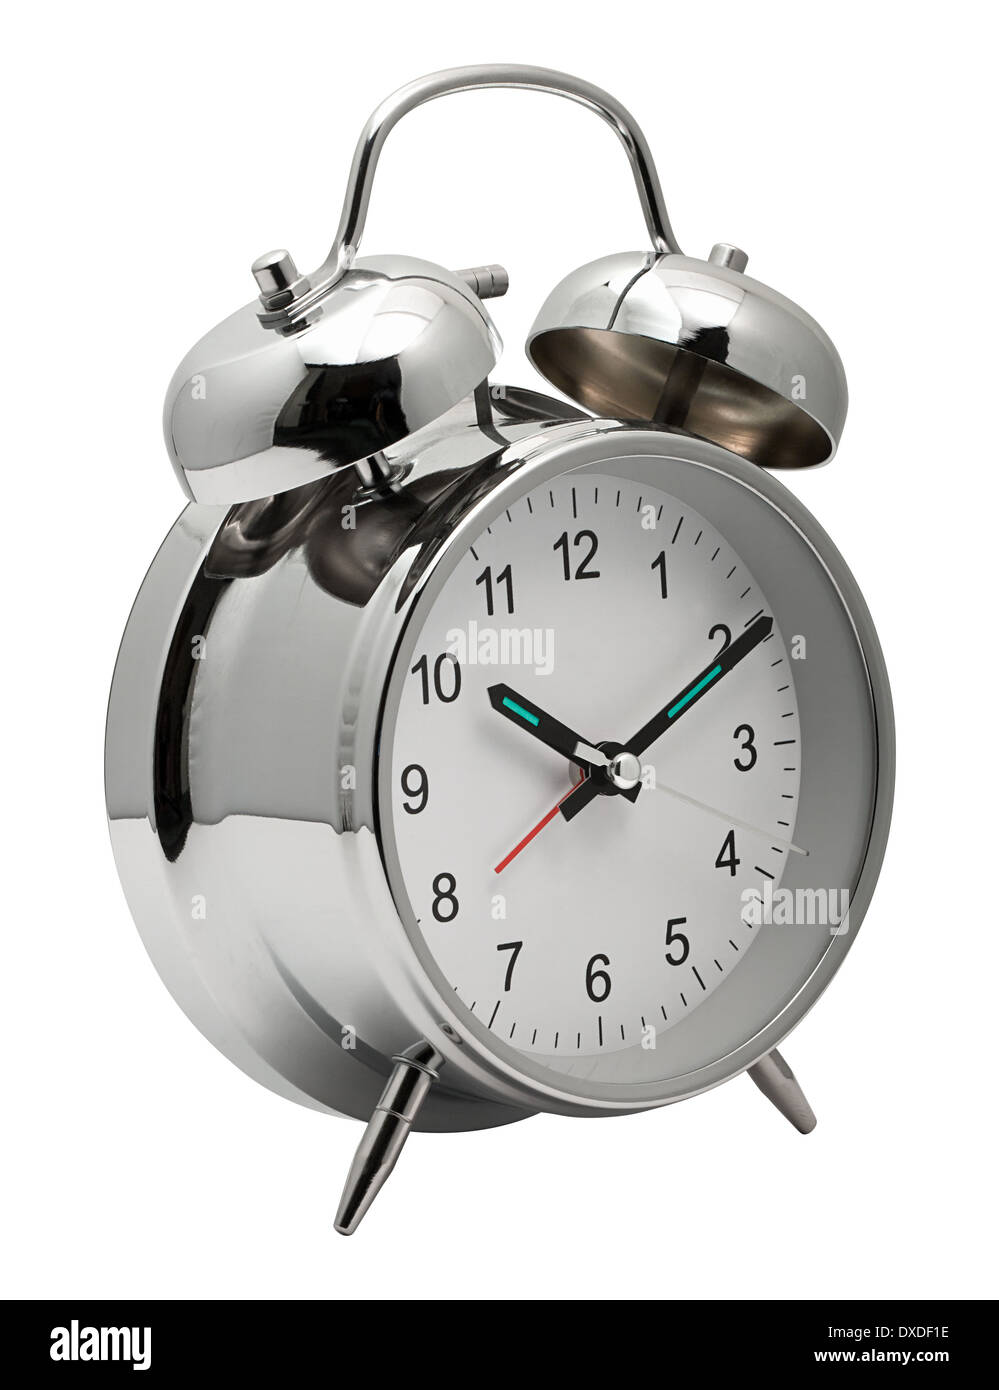 Classic silver chrome Clock with Alarm bells on top to get you out of bed - Stock Image